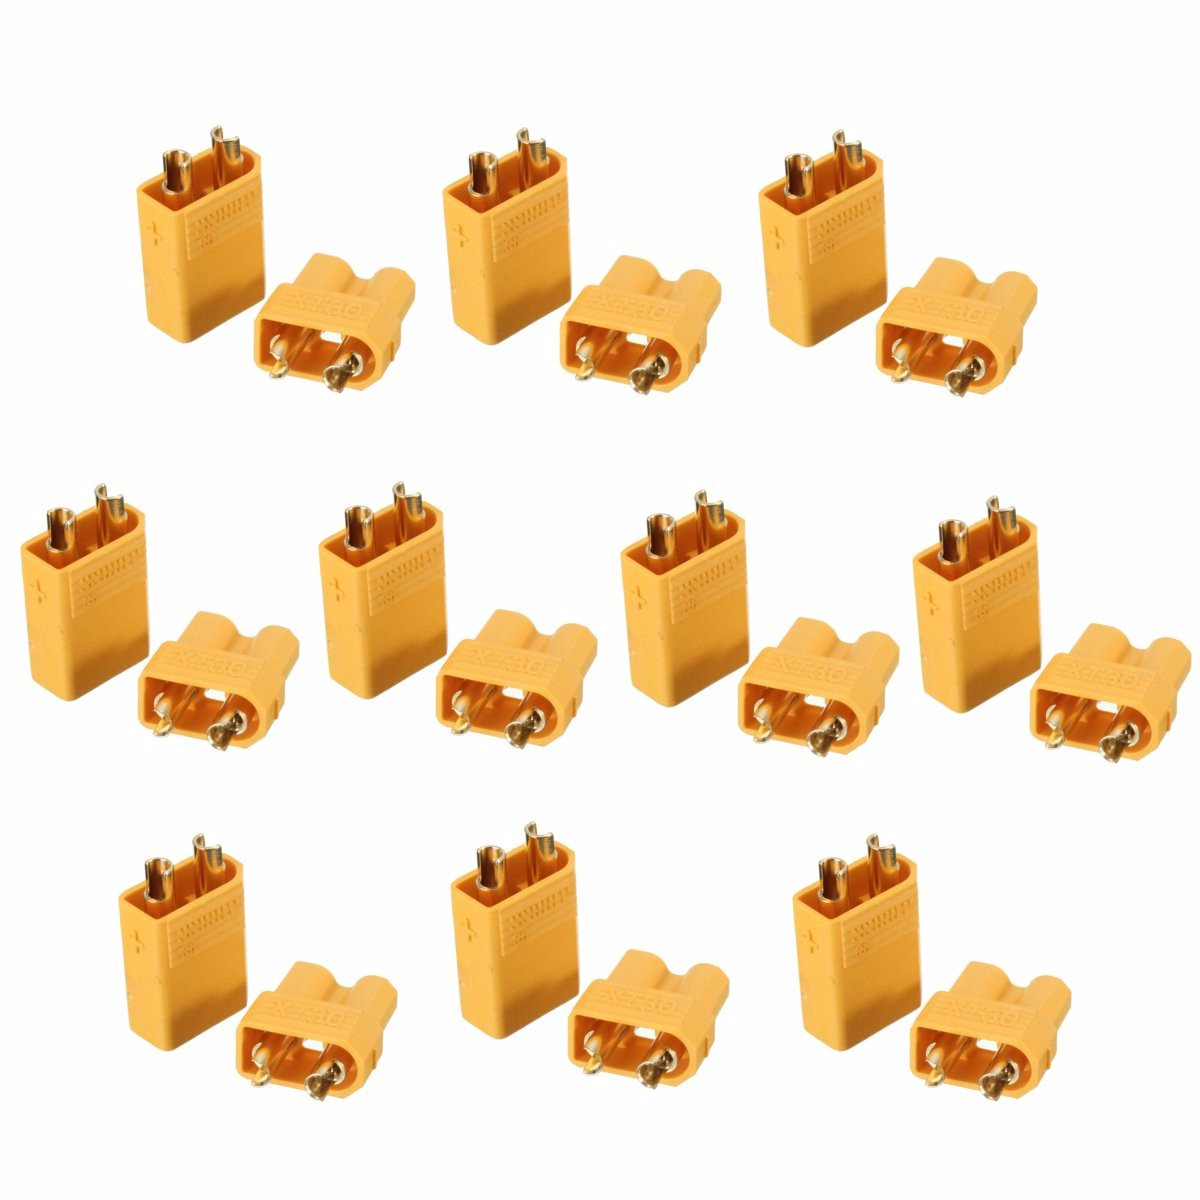 10Pcs XT60 XT30 5 Male 5 Female Bullet Connectors Plug For RC Quadcopter FPV Racing Drone Lipo Battery Tinywhoop